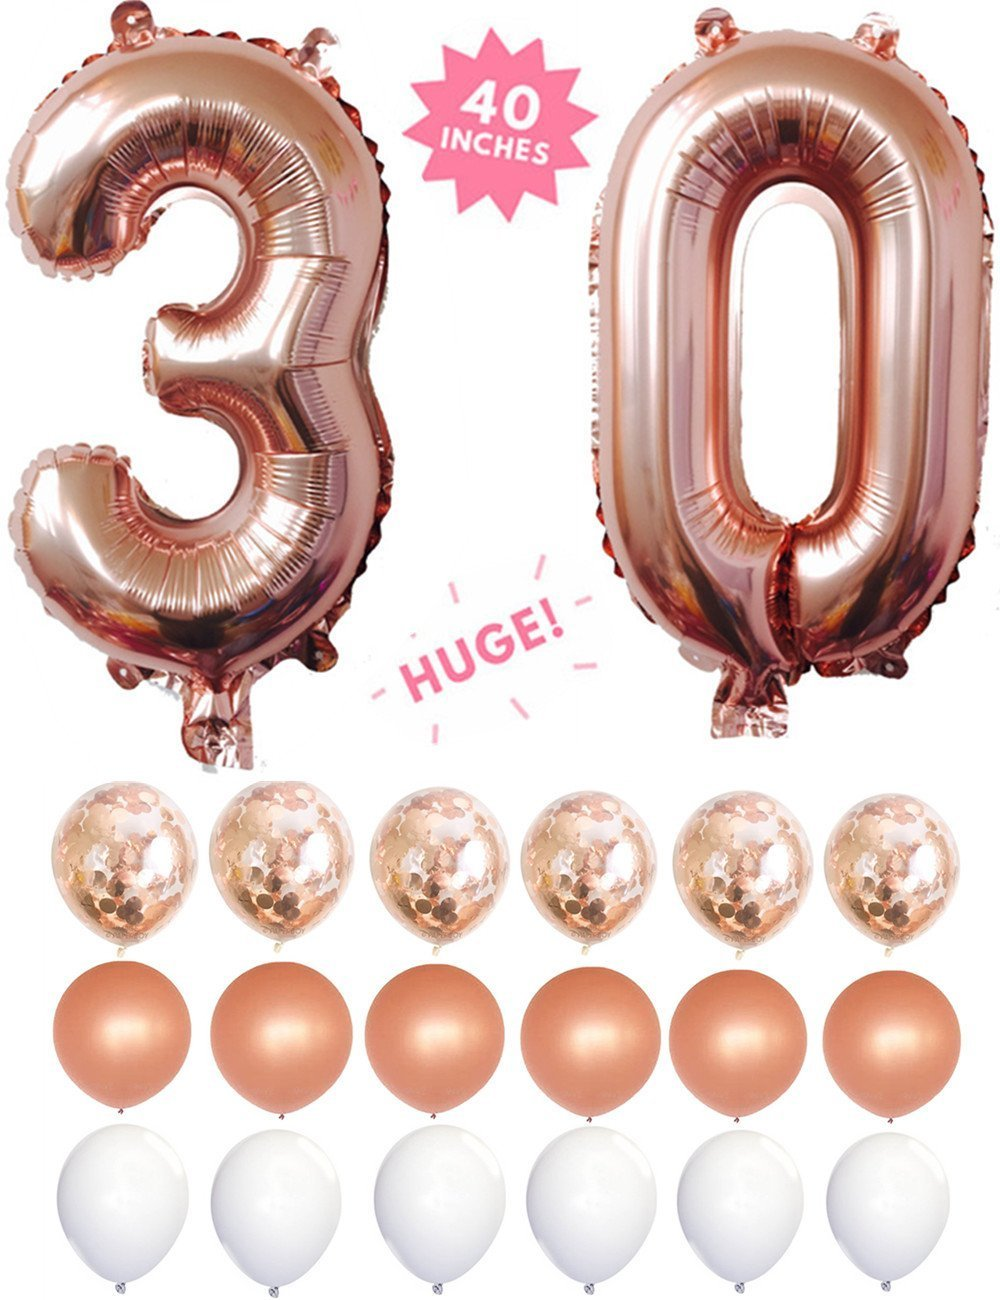 30 Rose Gold 40 inch Huge Giant Number Balloons by Smiling Wolf, Foil, Confetti & Latex Balloons for Anniversary,30th Birthday Decorations Party partygo